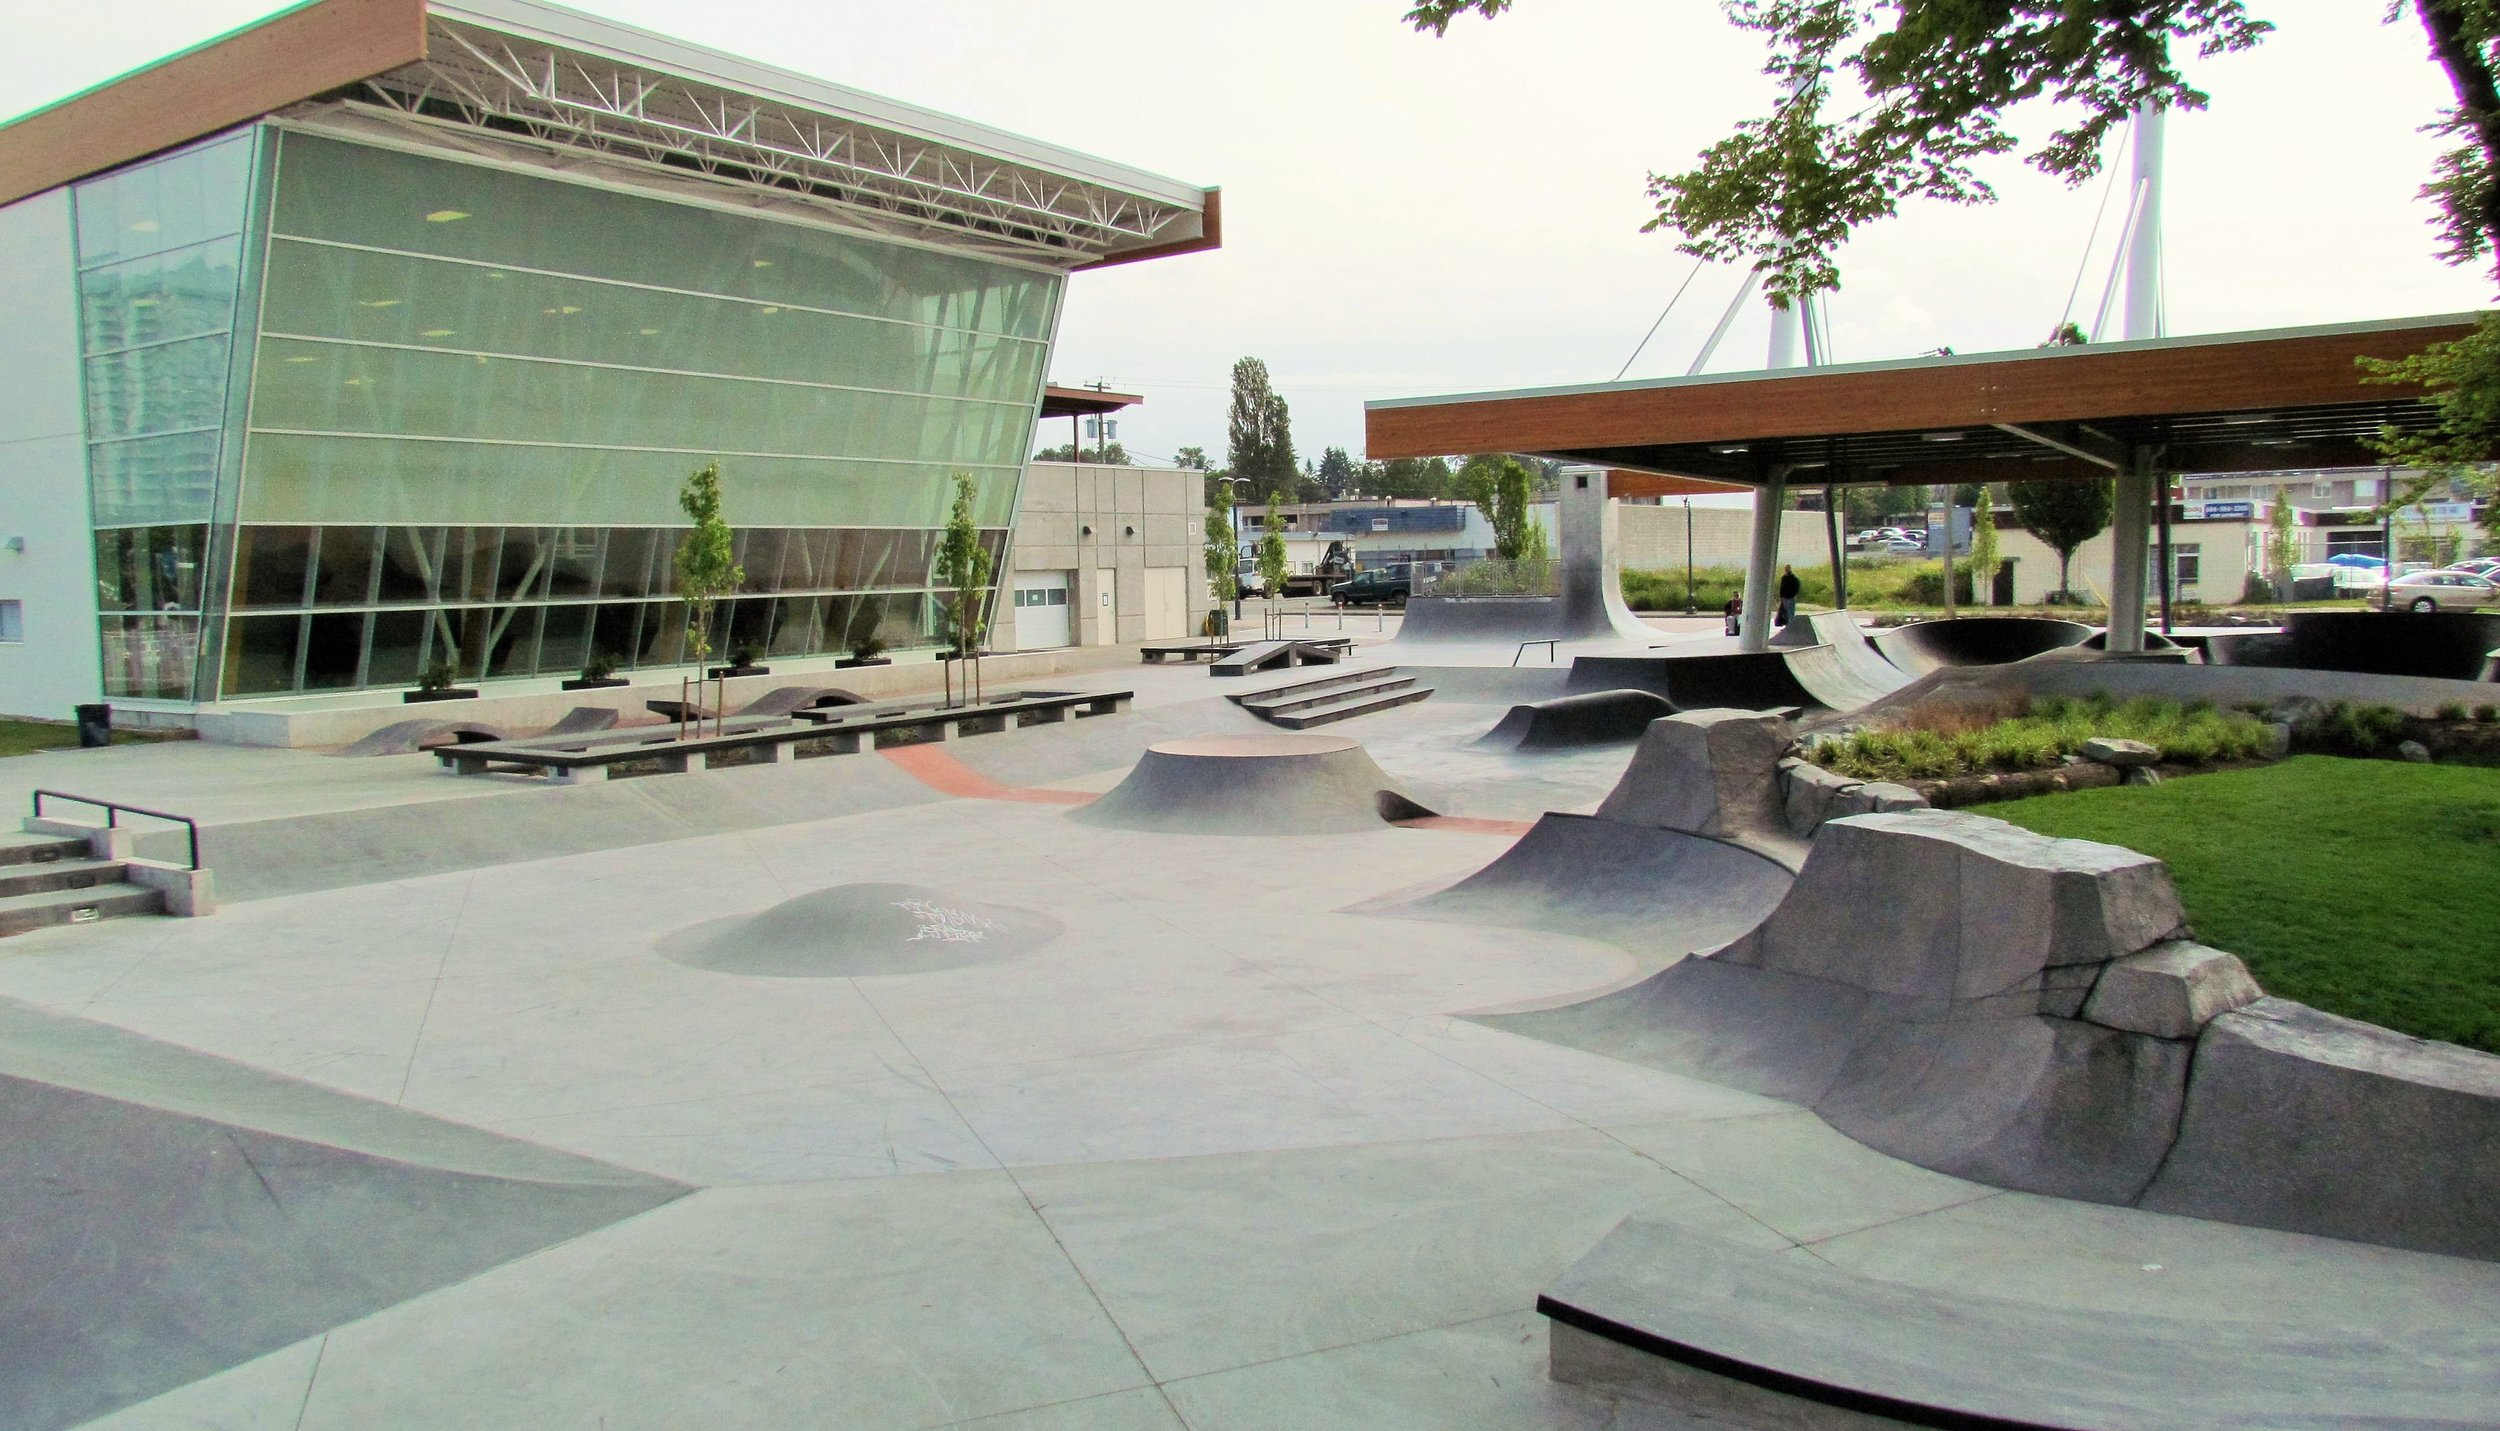 Vancouver's Surrey BC Skatepark is transit accessible, and adjacent to an existing recreation center. This center shares many attributes with Dallas' planned location at Bachman Lake, with existing DART transit access, trail access, as well as an existing recreation facility. Maybe we should take a trip to Vancouver and check it out!